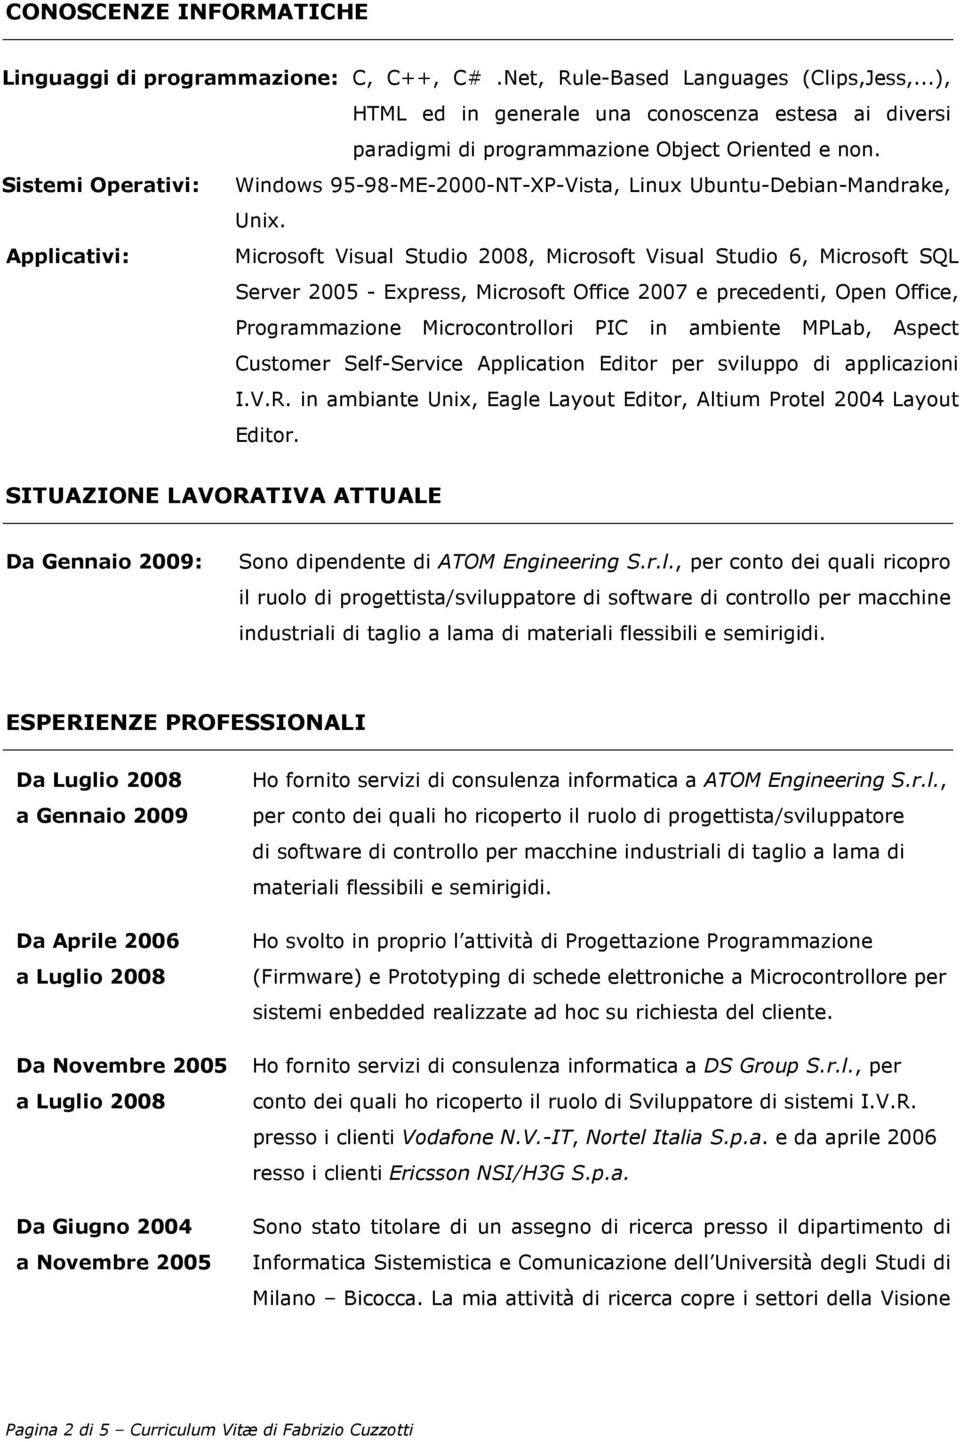 Applicativi: Microsoft Visual Studio 2008, Microsoft Visual Studio 6, Microsoft SQL Server 2005 - Express, Microsoft Office 2007 e precedenti, Open Office, Programmazione Microcontrollori PIC in